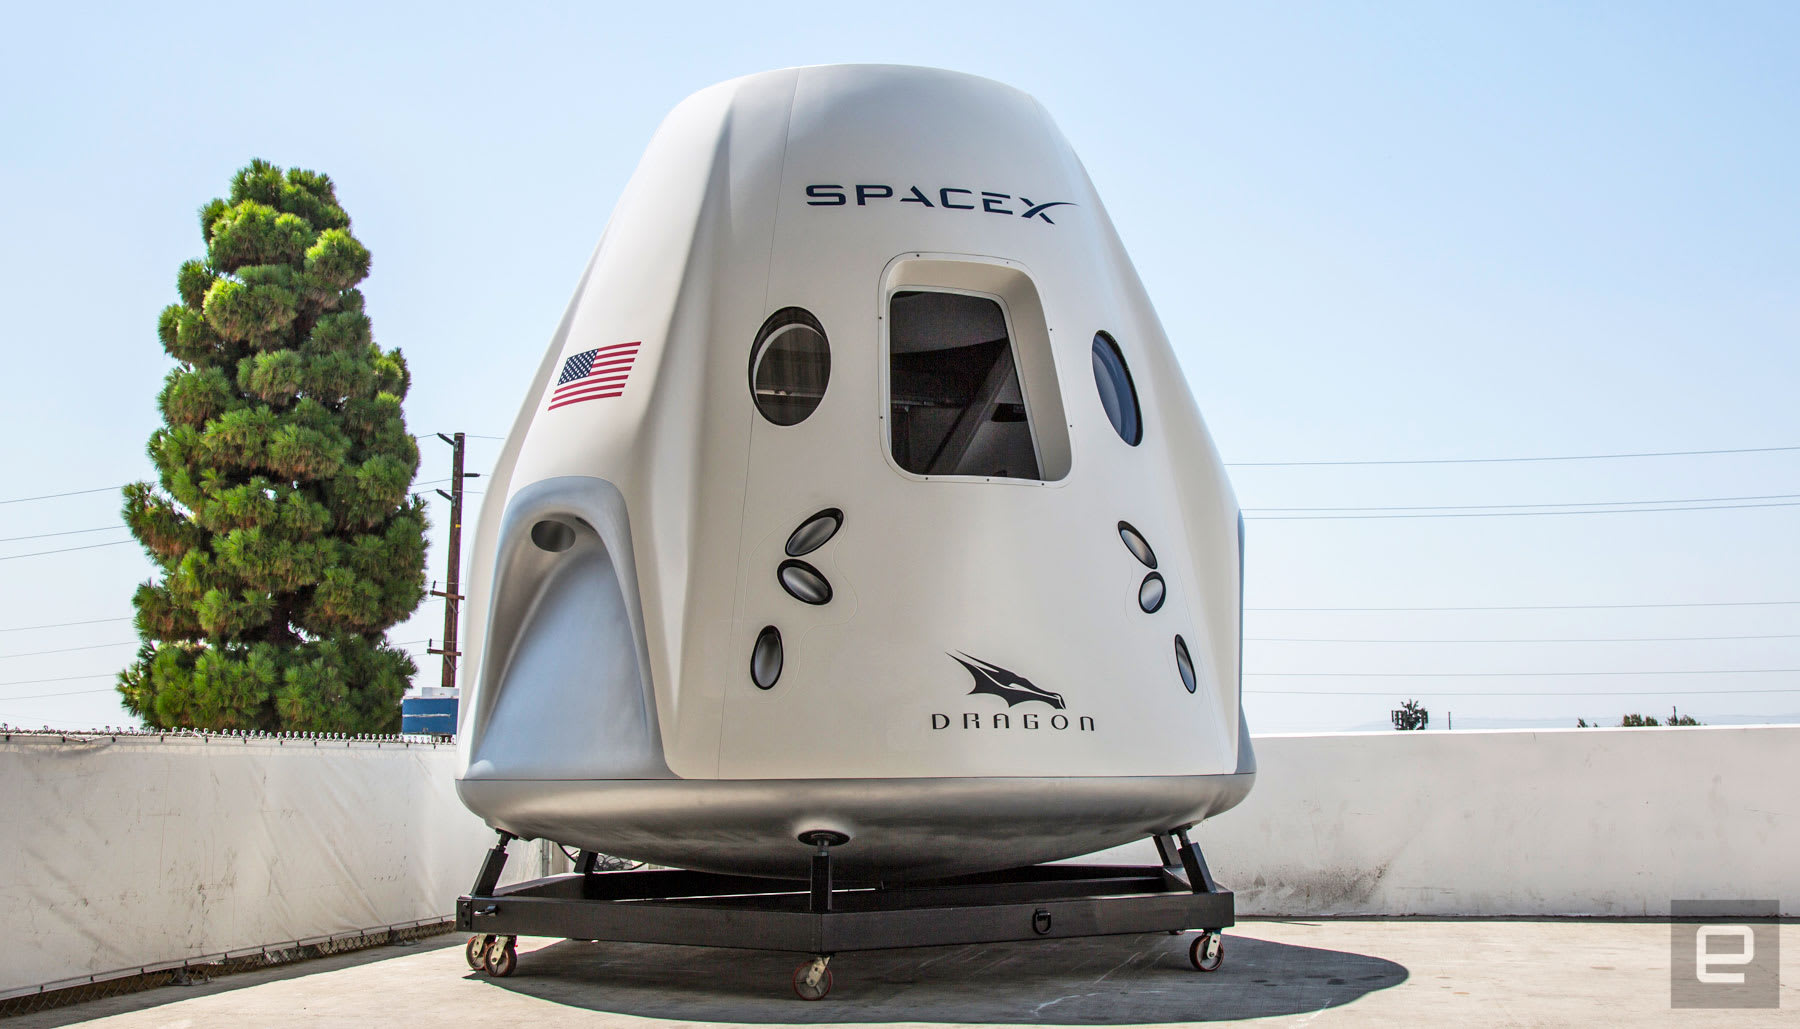 SpaceX readies its spacecraft and astronauts for crewed missions